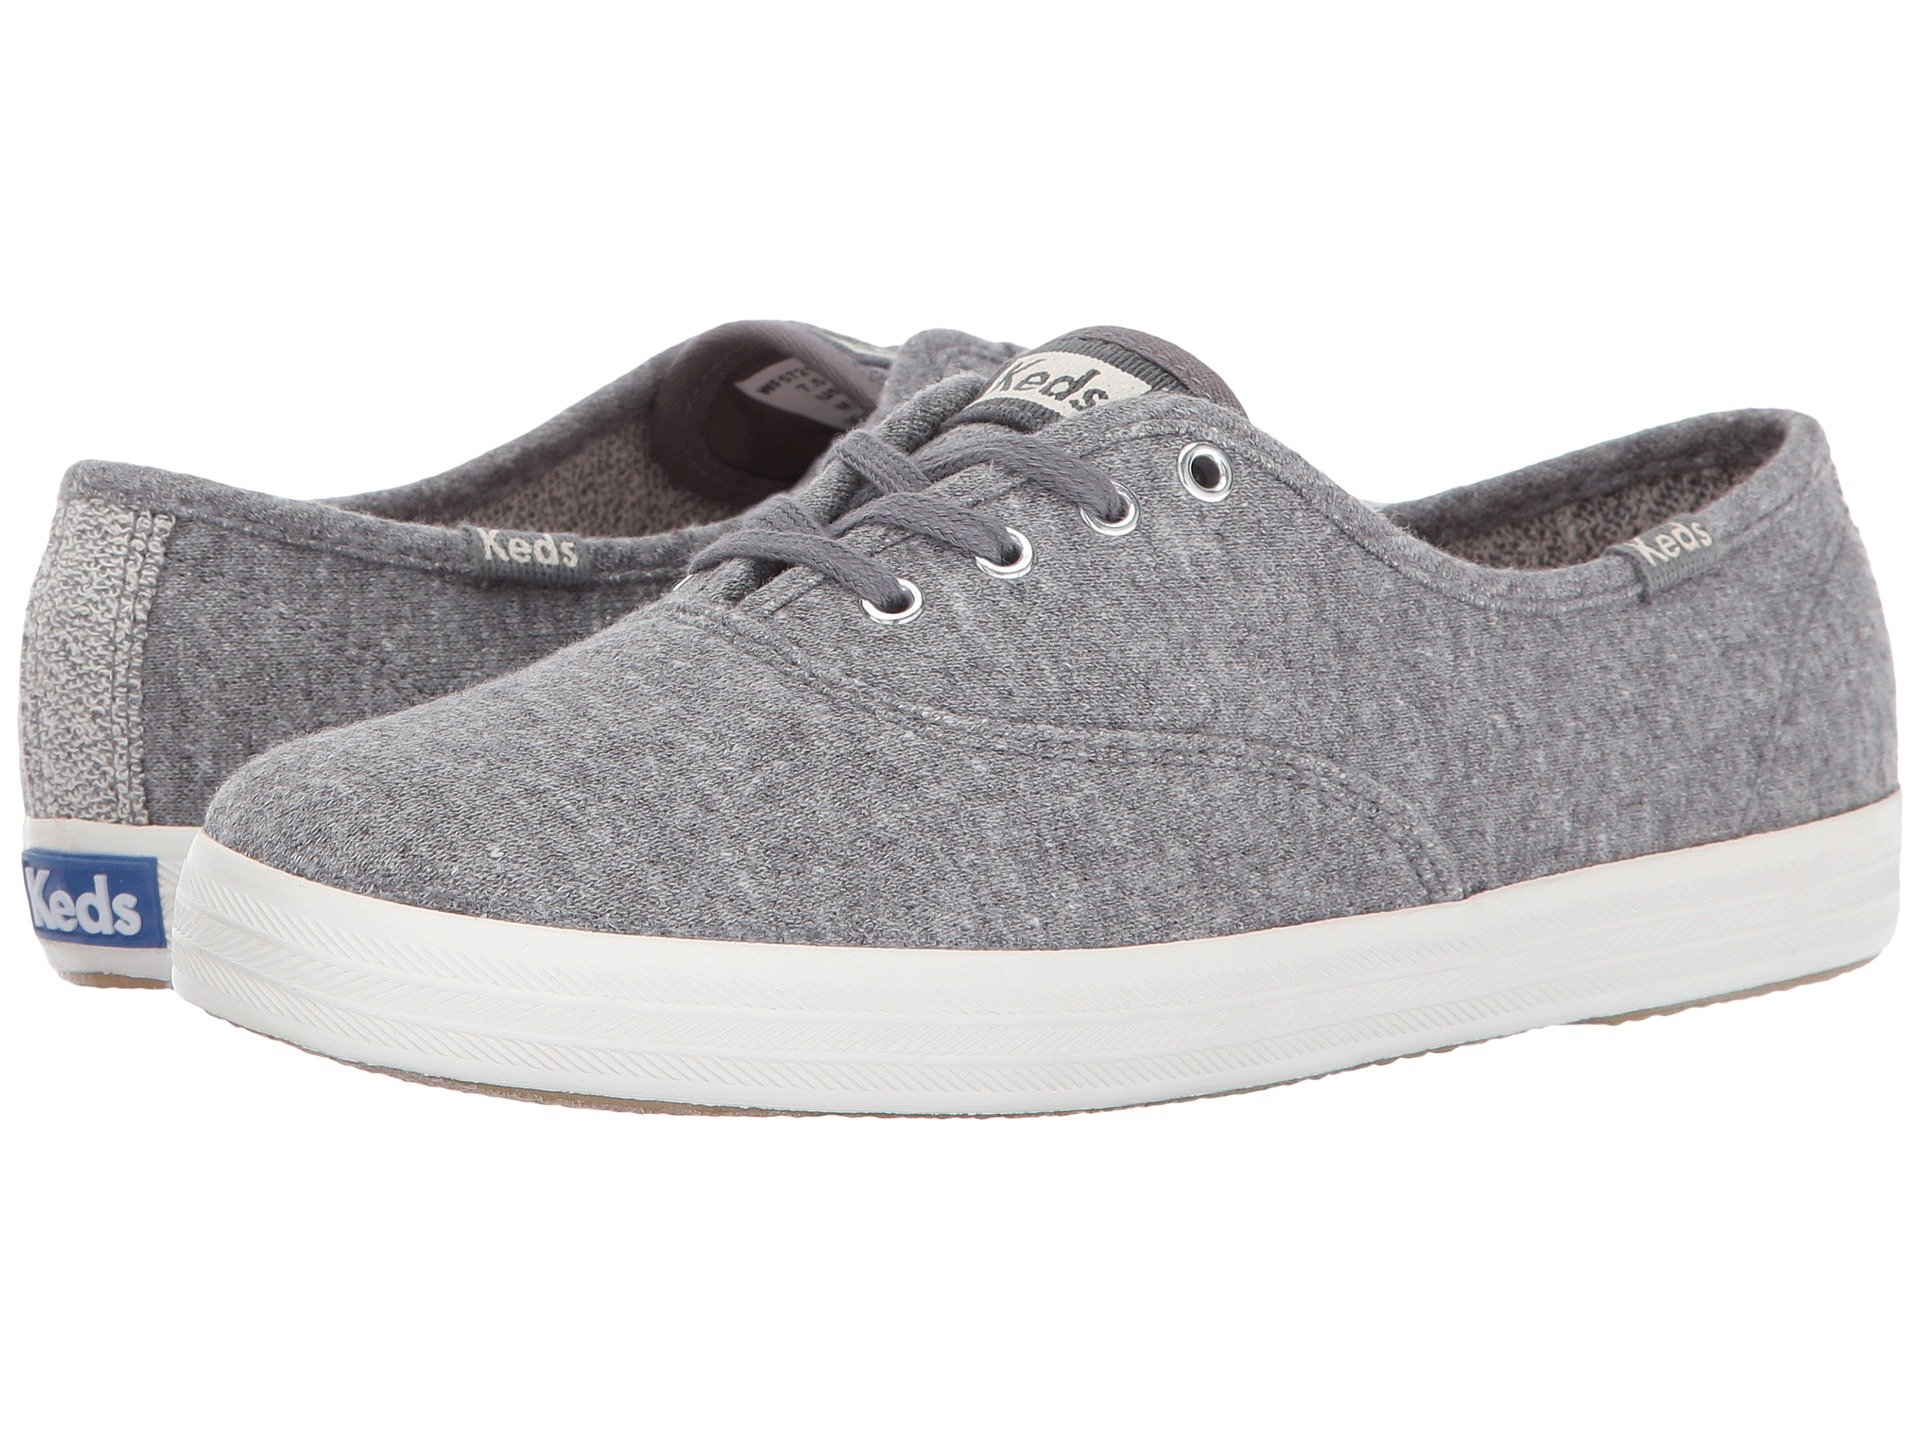 258b3367dbf Keds Champion Sweatshirt Jersey In Grey